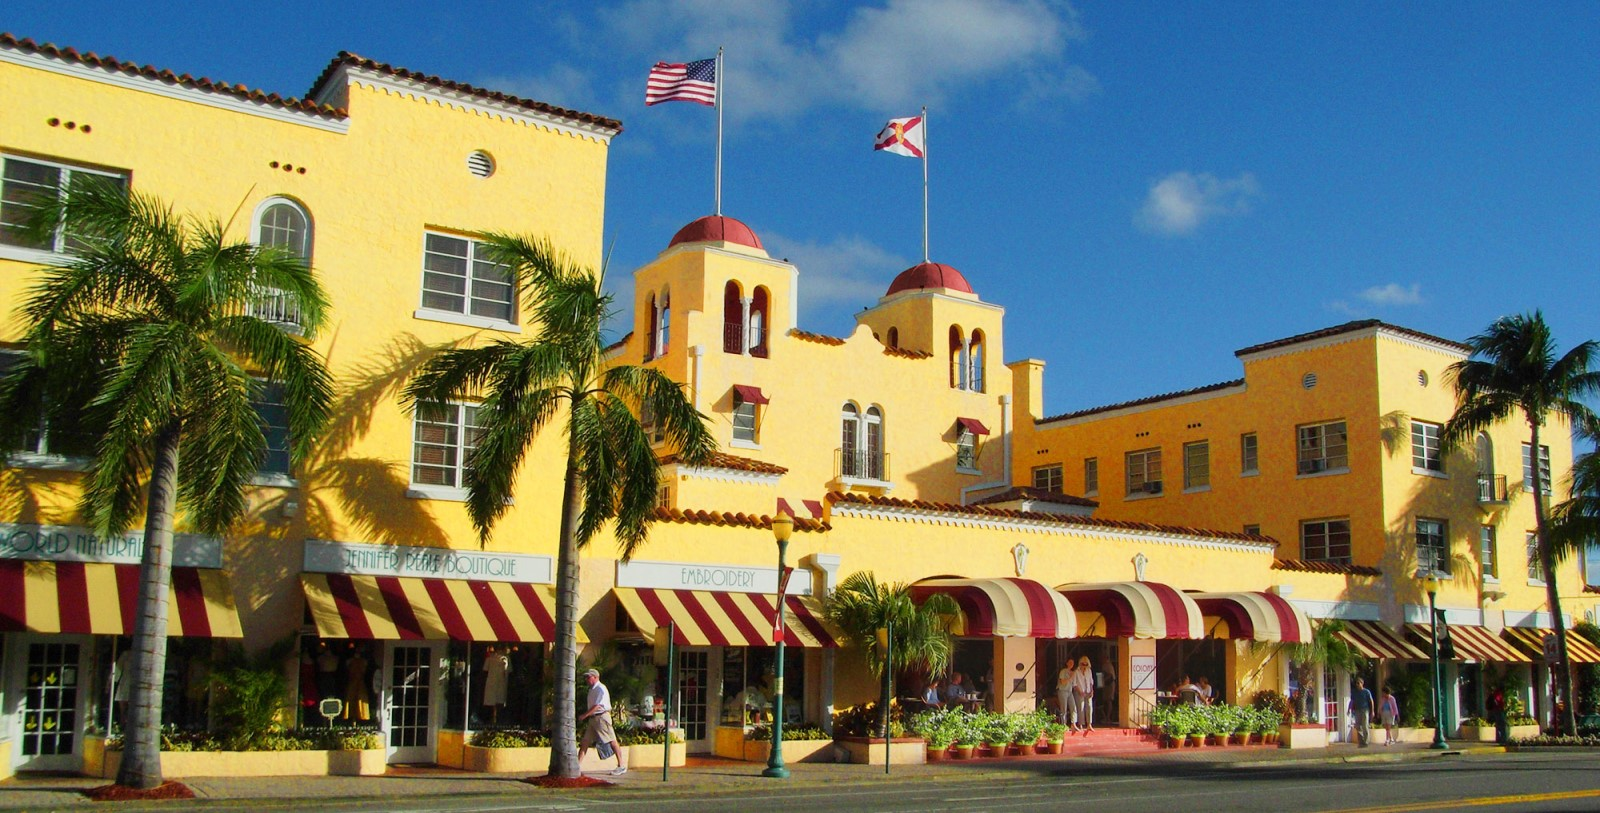 Image of Hotel Exterior at Colony Hotel & Cabana Club, 1926, Member of Historic Hotels of America, in Delray Beach, Florida, Overview